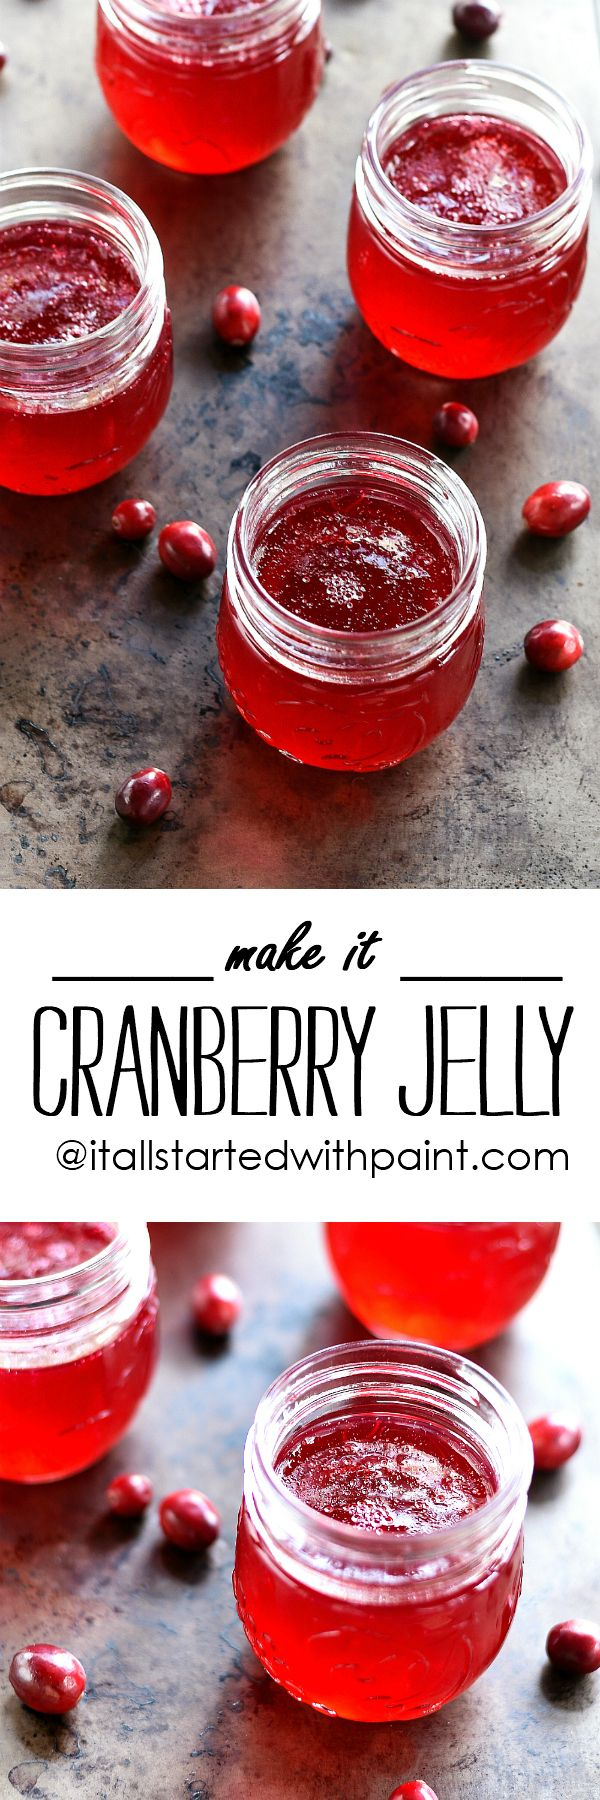 Cranberry Jelly Recipe - Cranberry Recipe Ideas